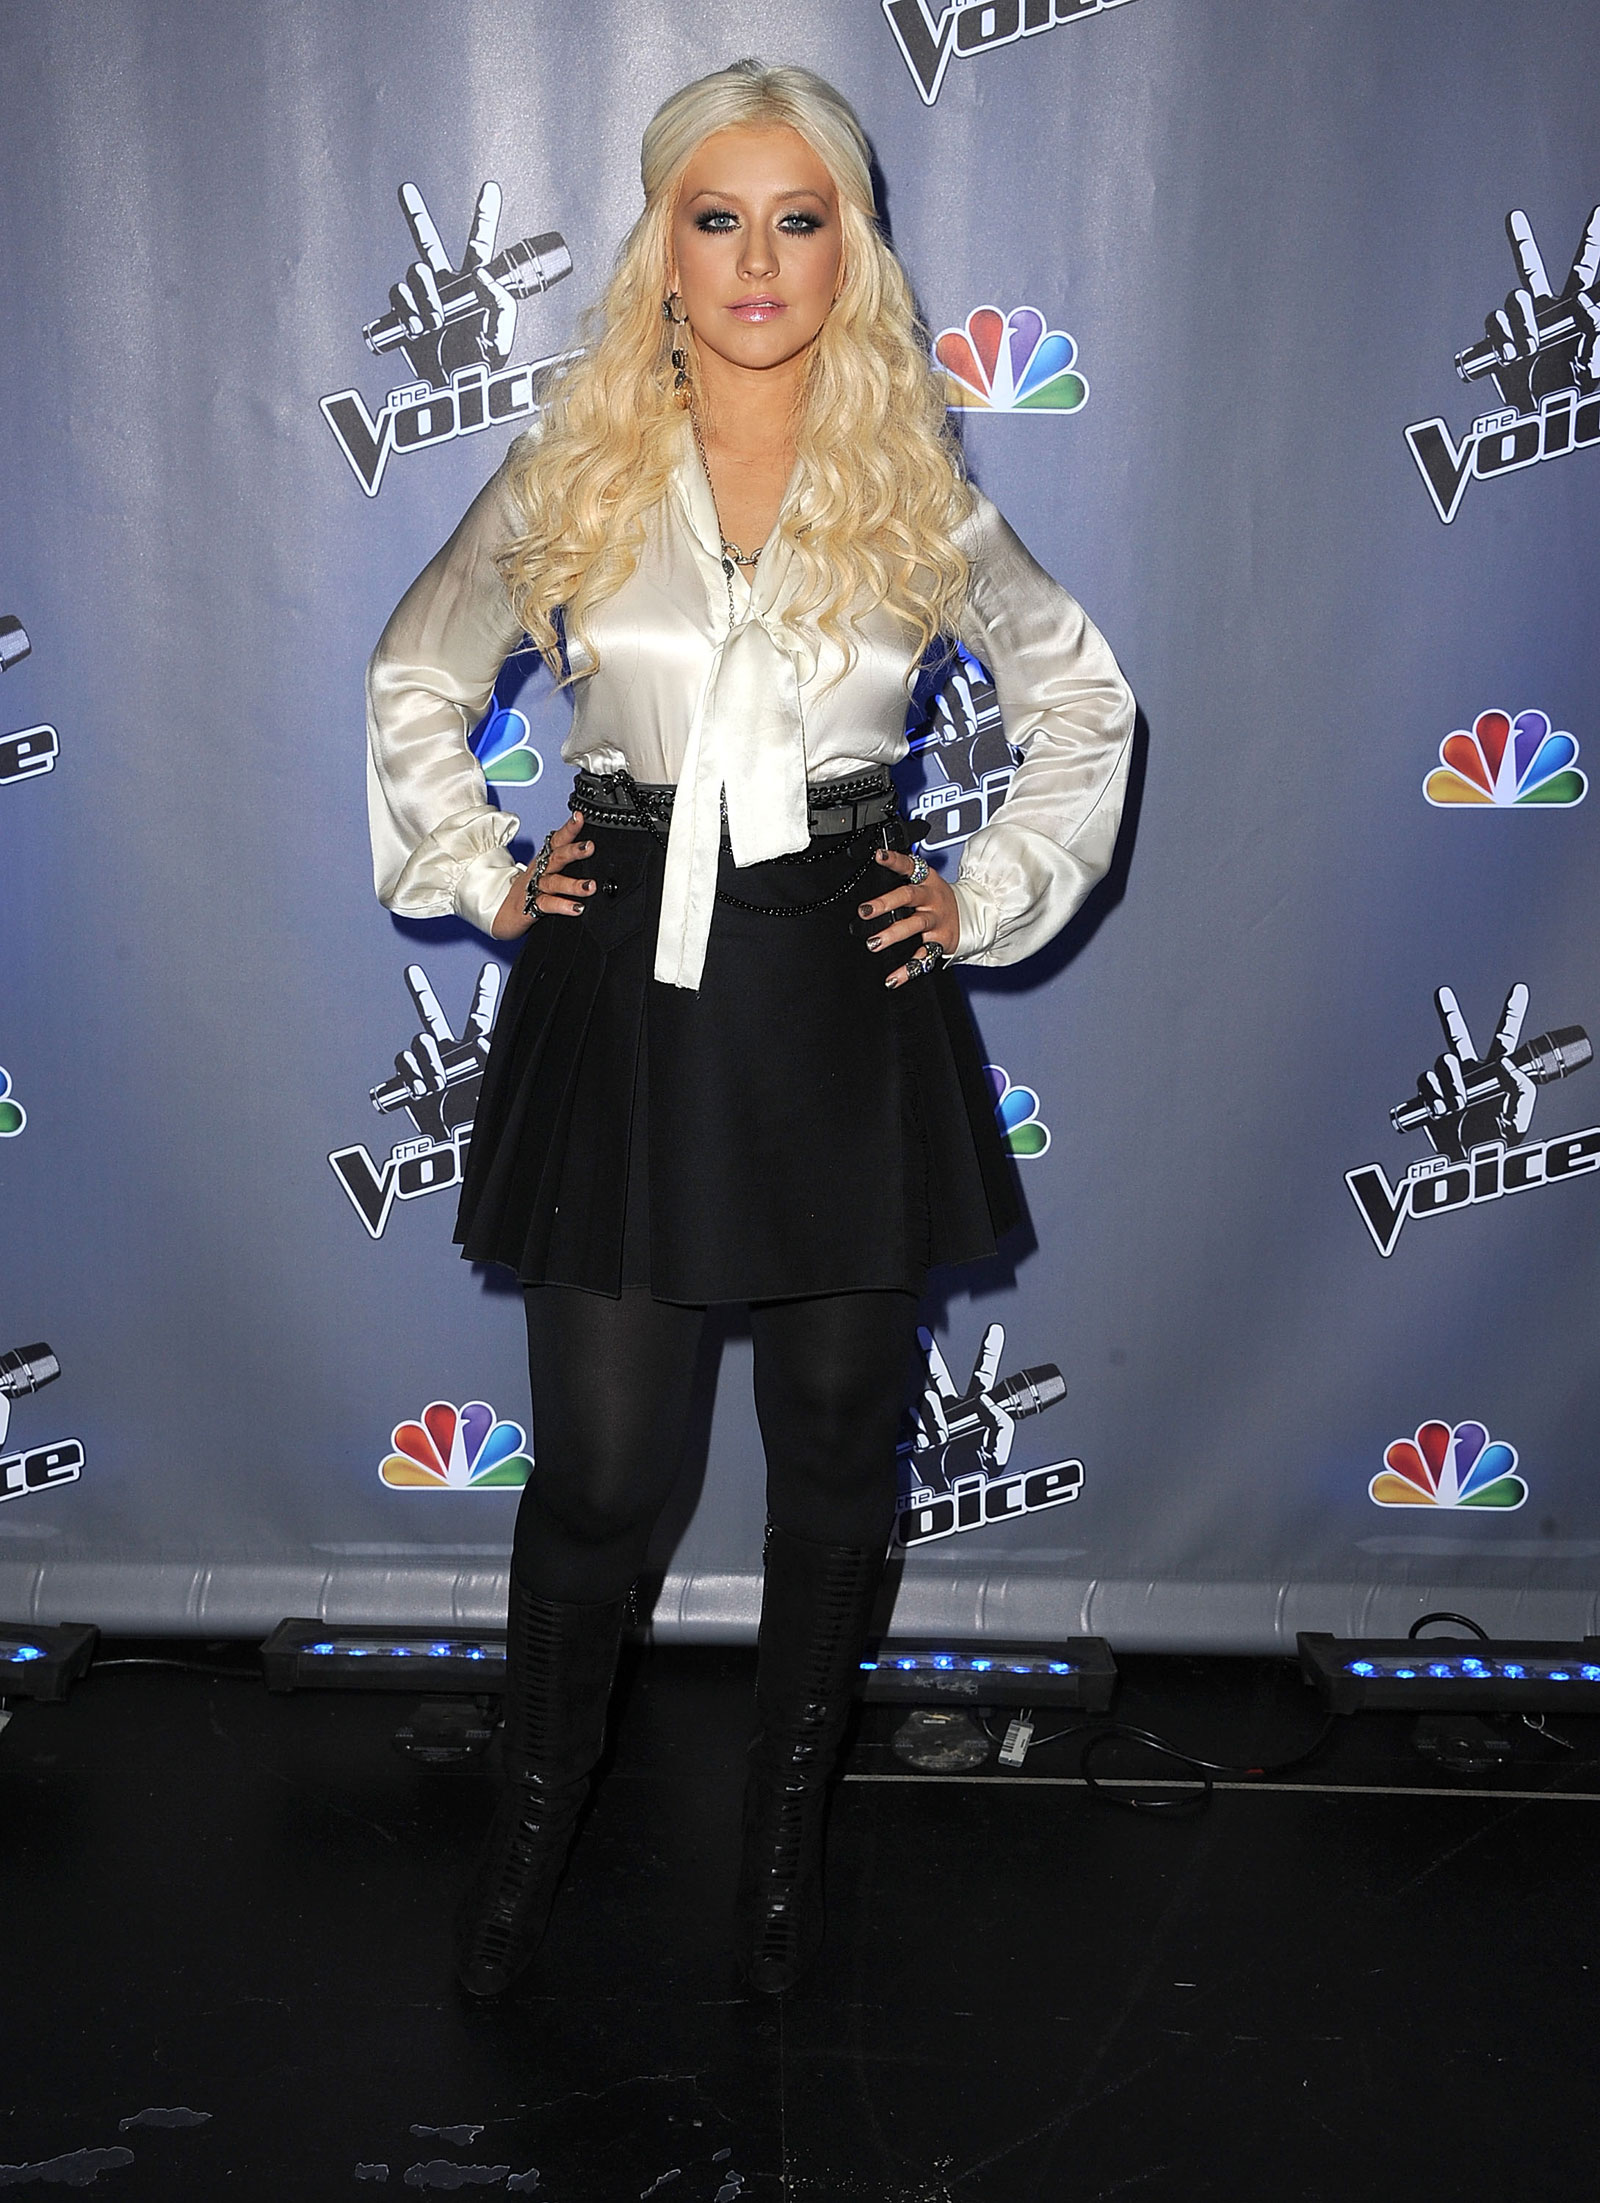 56 Photos of Christina Aguilera at The Voice Season 2 in ...